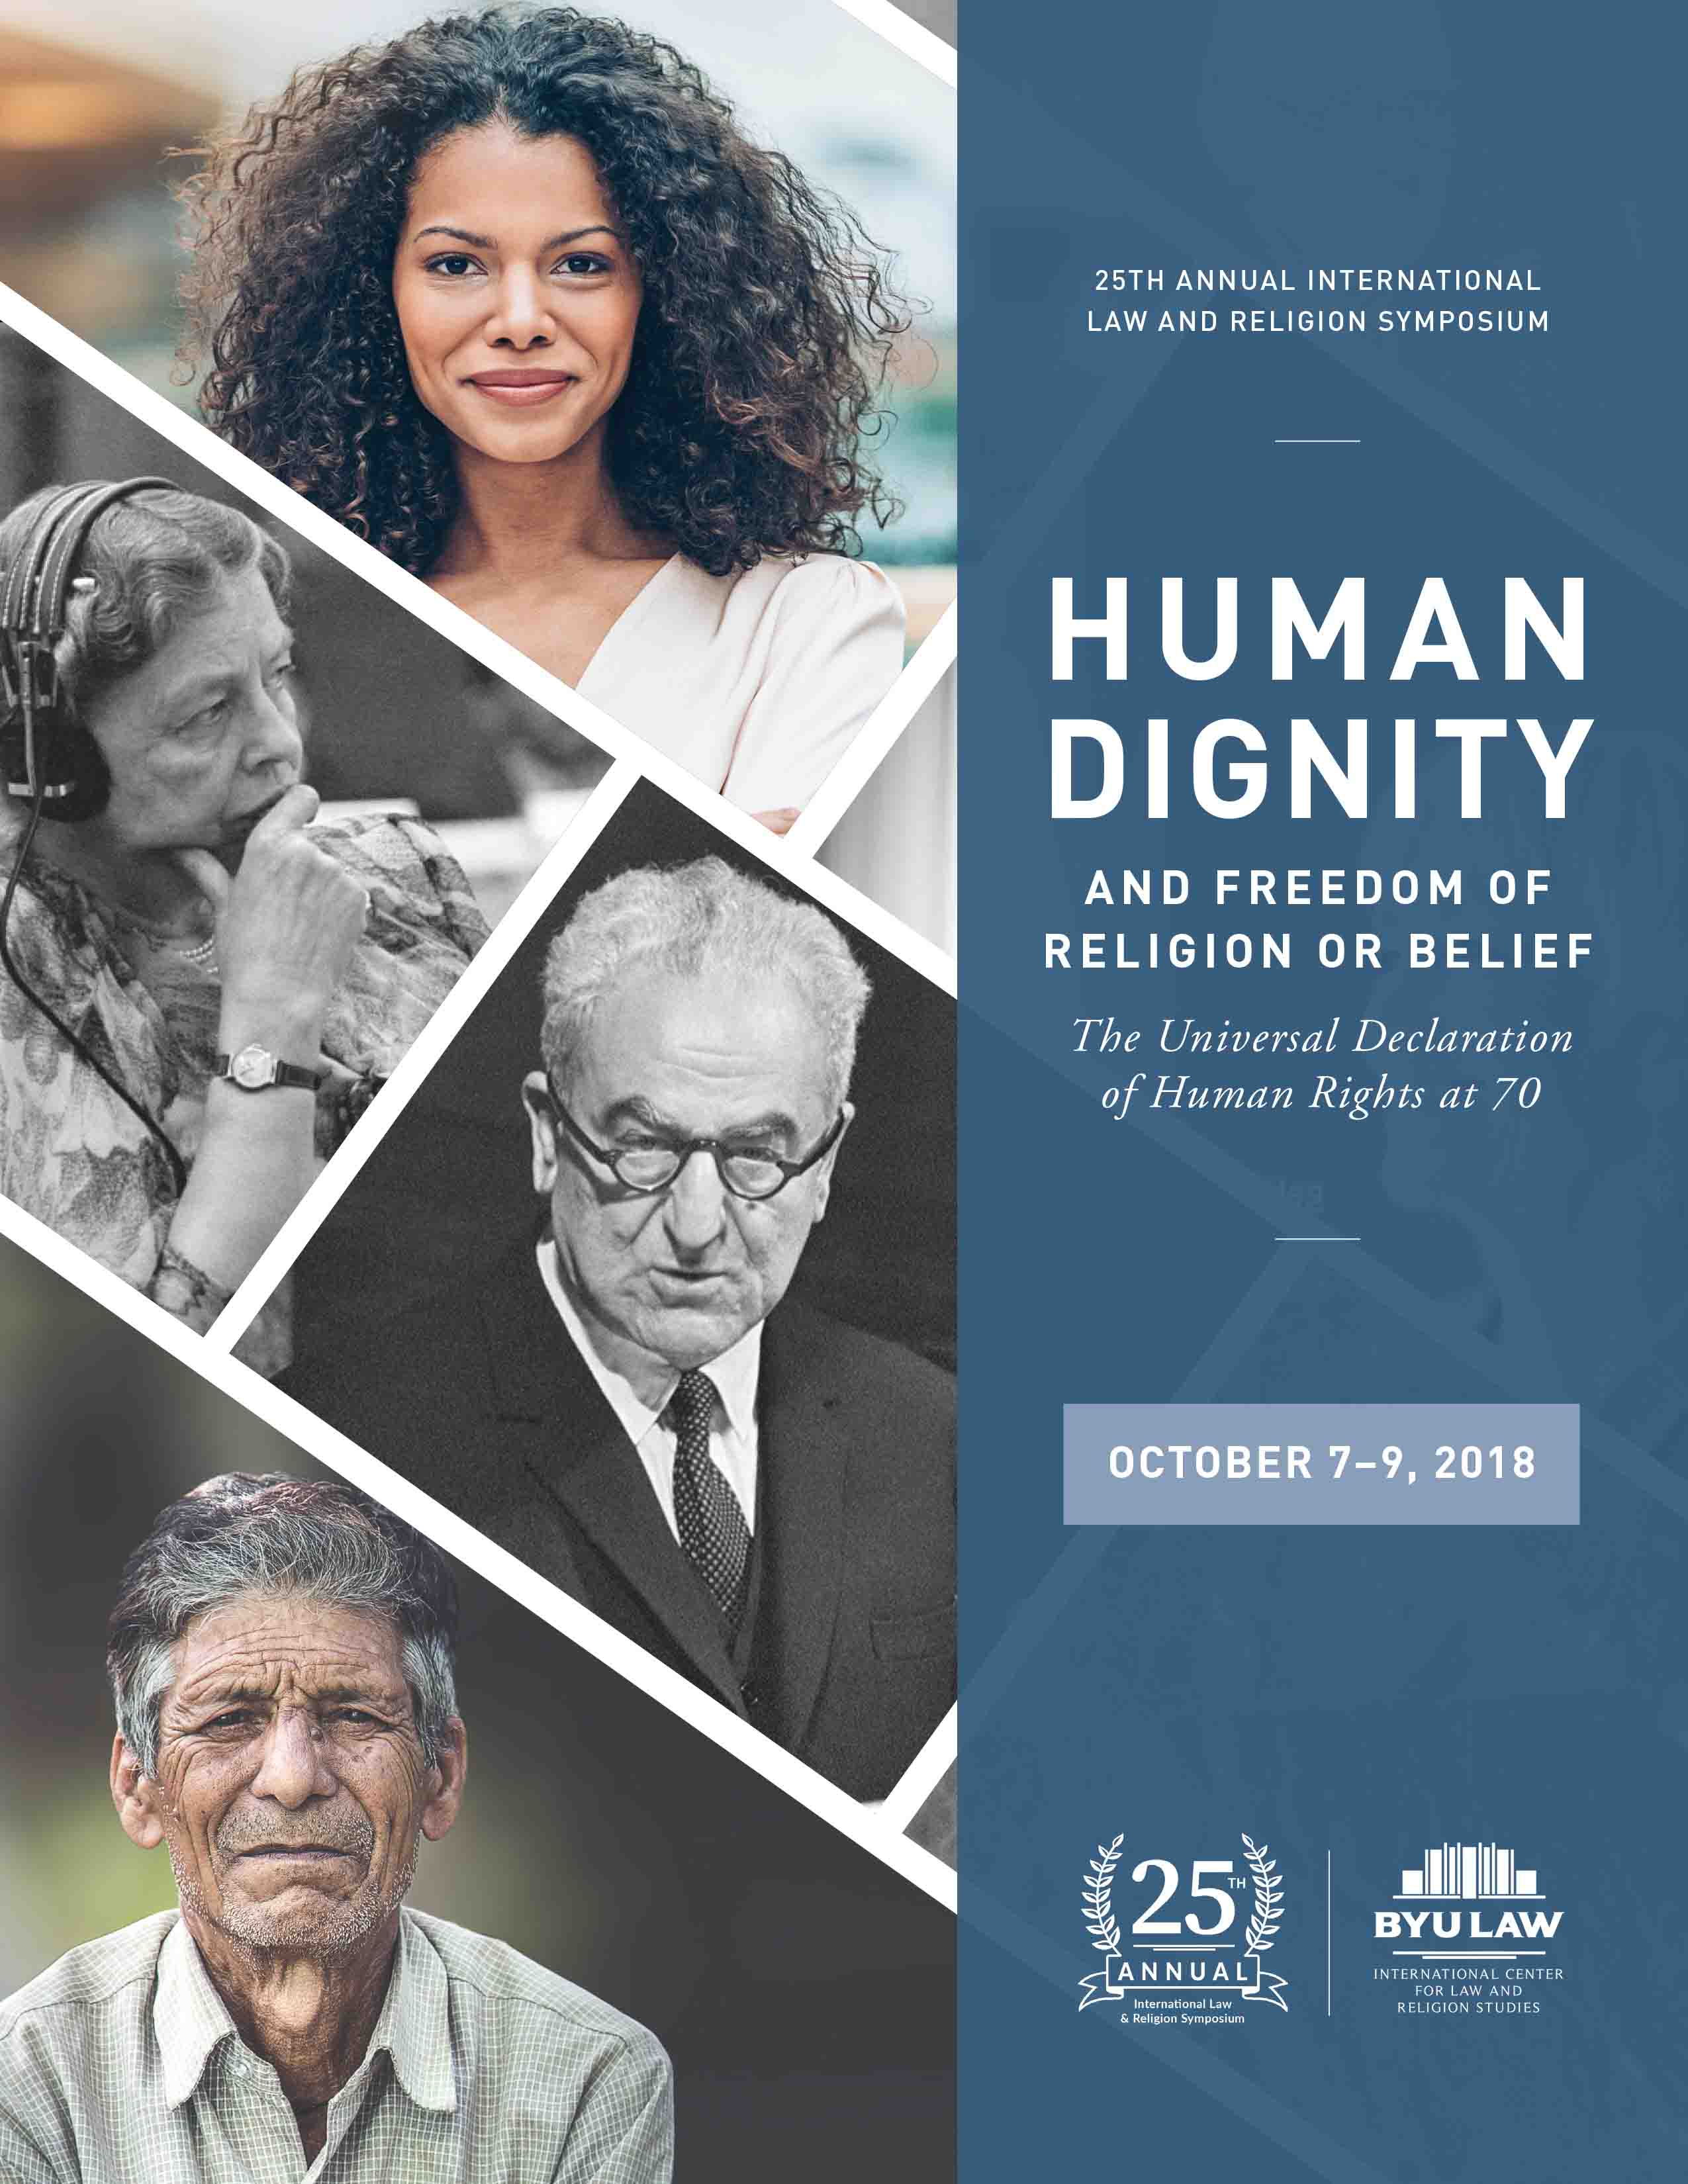 Image for The 25th Annual International Law and Religion Symposium — Protecting Religious Freedom and Dignity: The Universal Declaration of Human Rights at 70